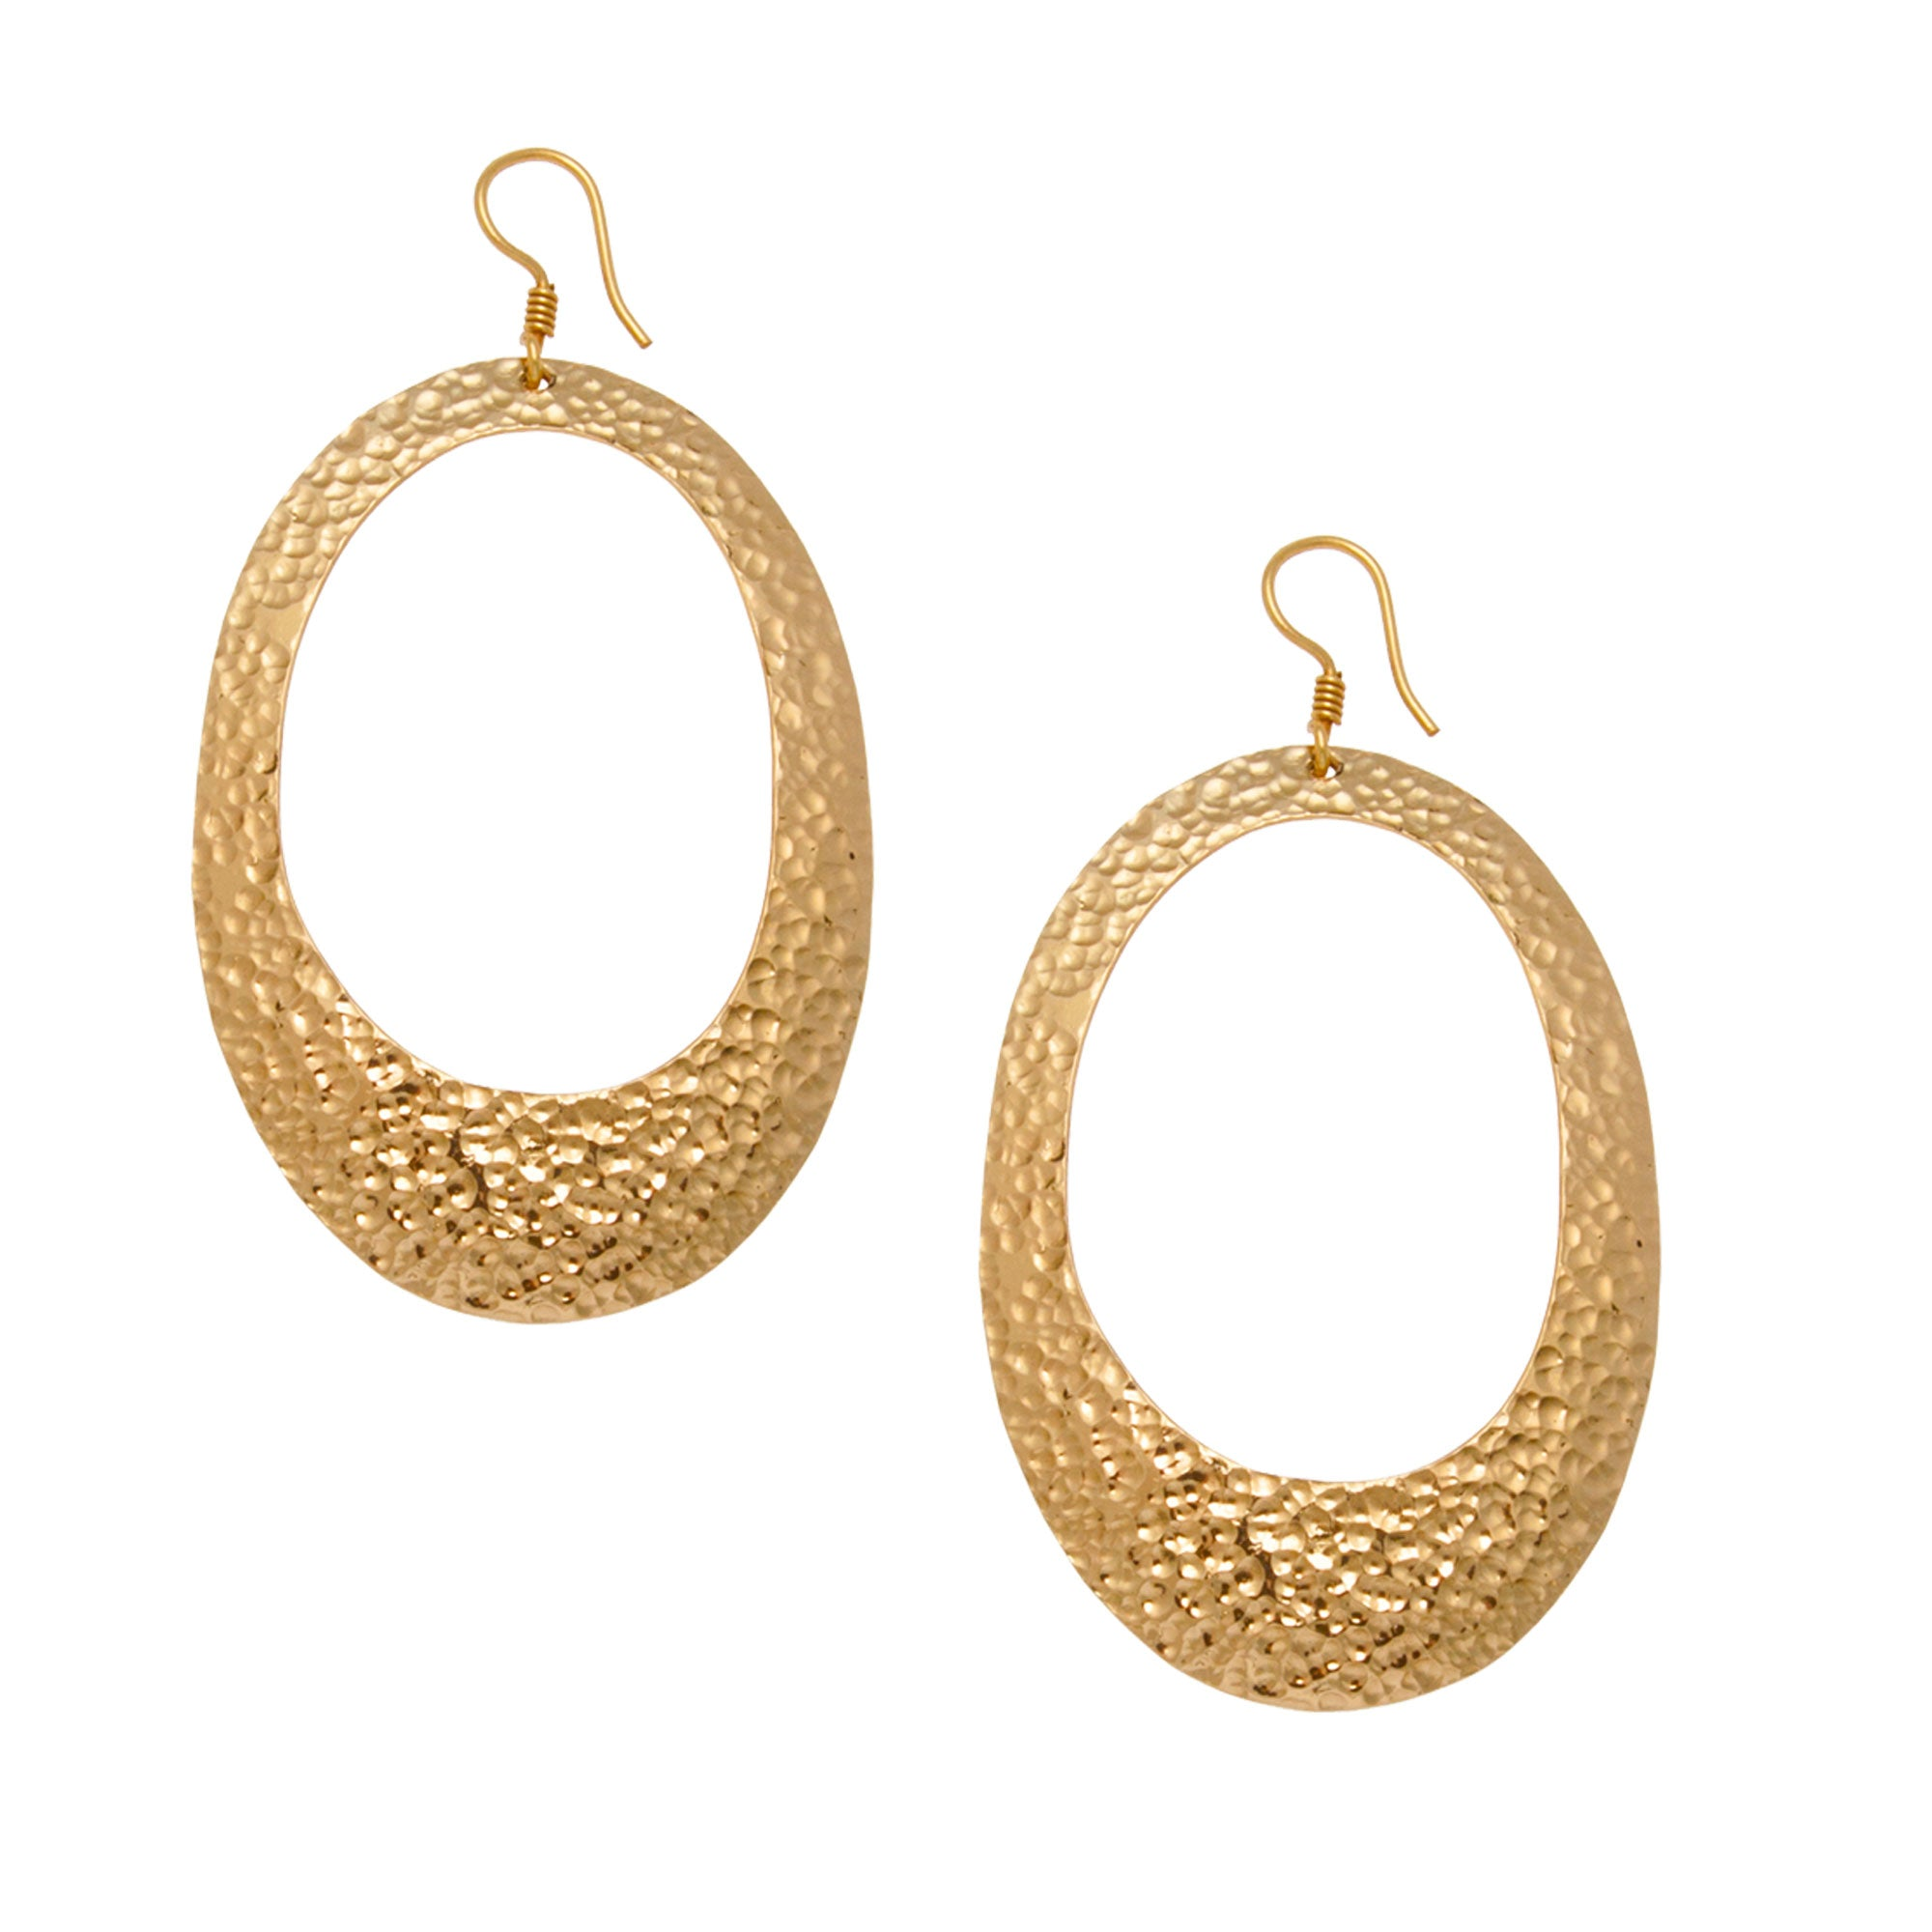 alchemia-oval-hammered-earrings - 1 - Charles Albert Inc